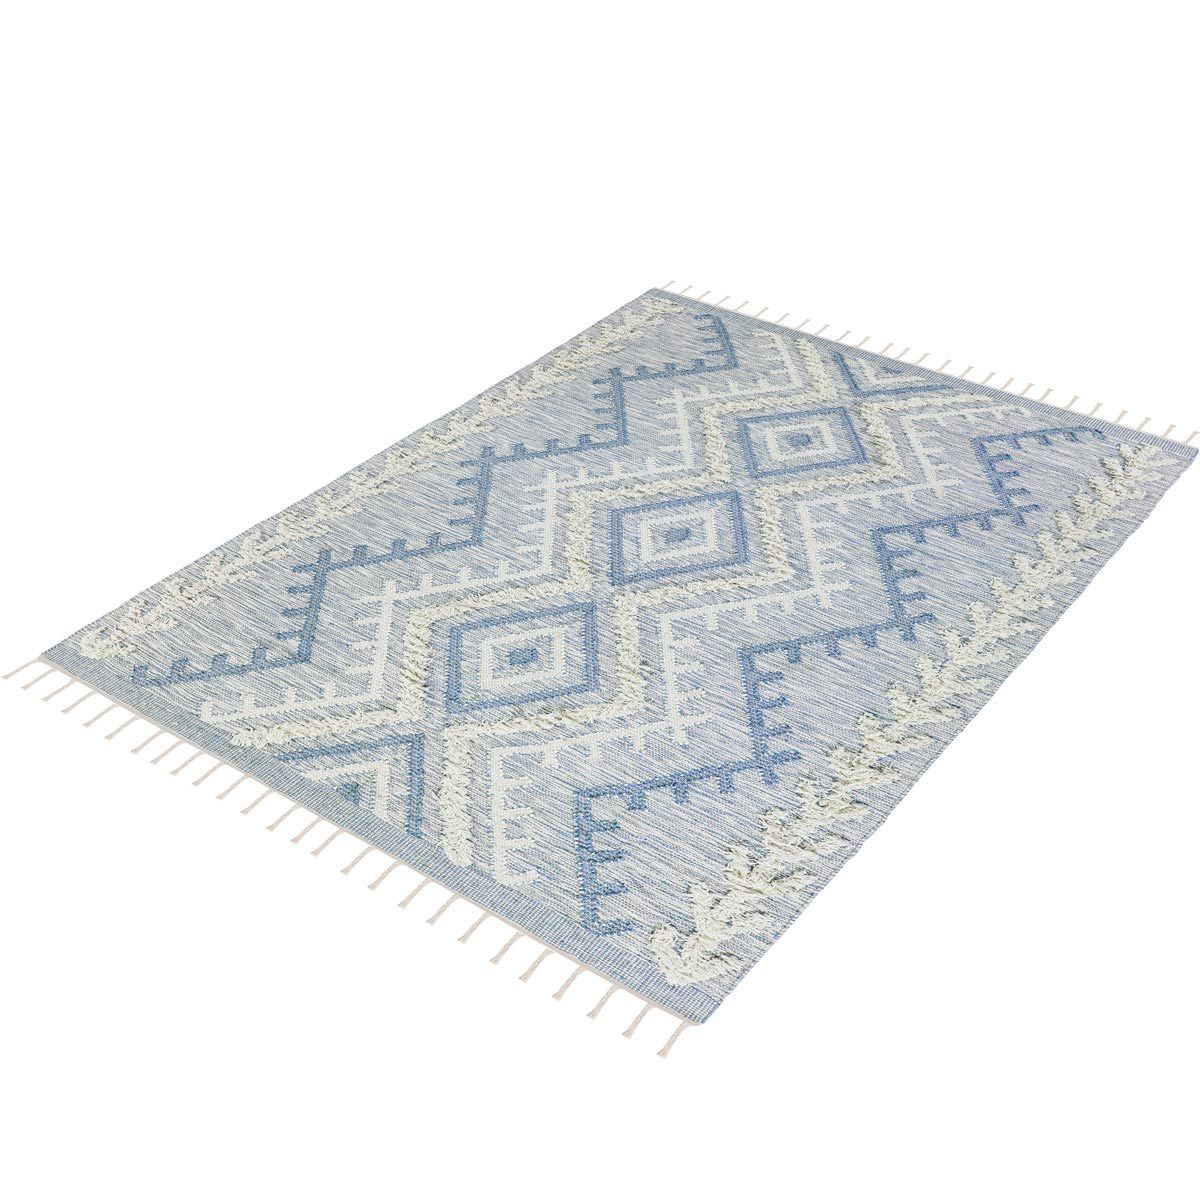 Tangier Rug 05 light blue 5